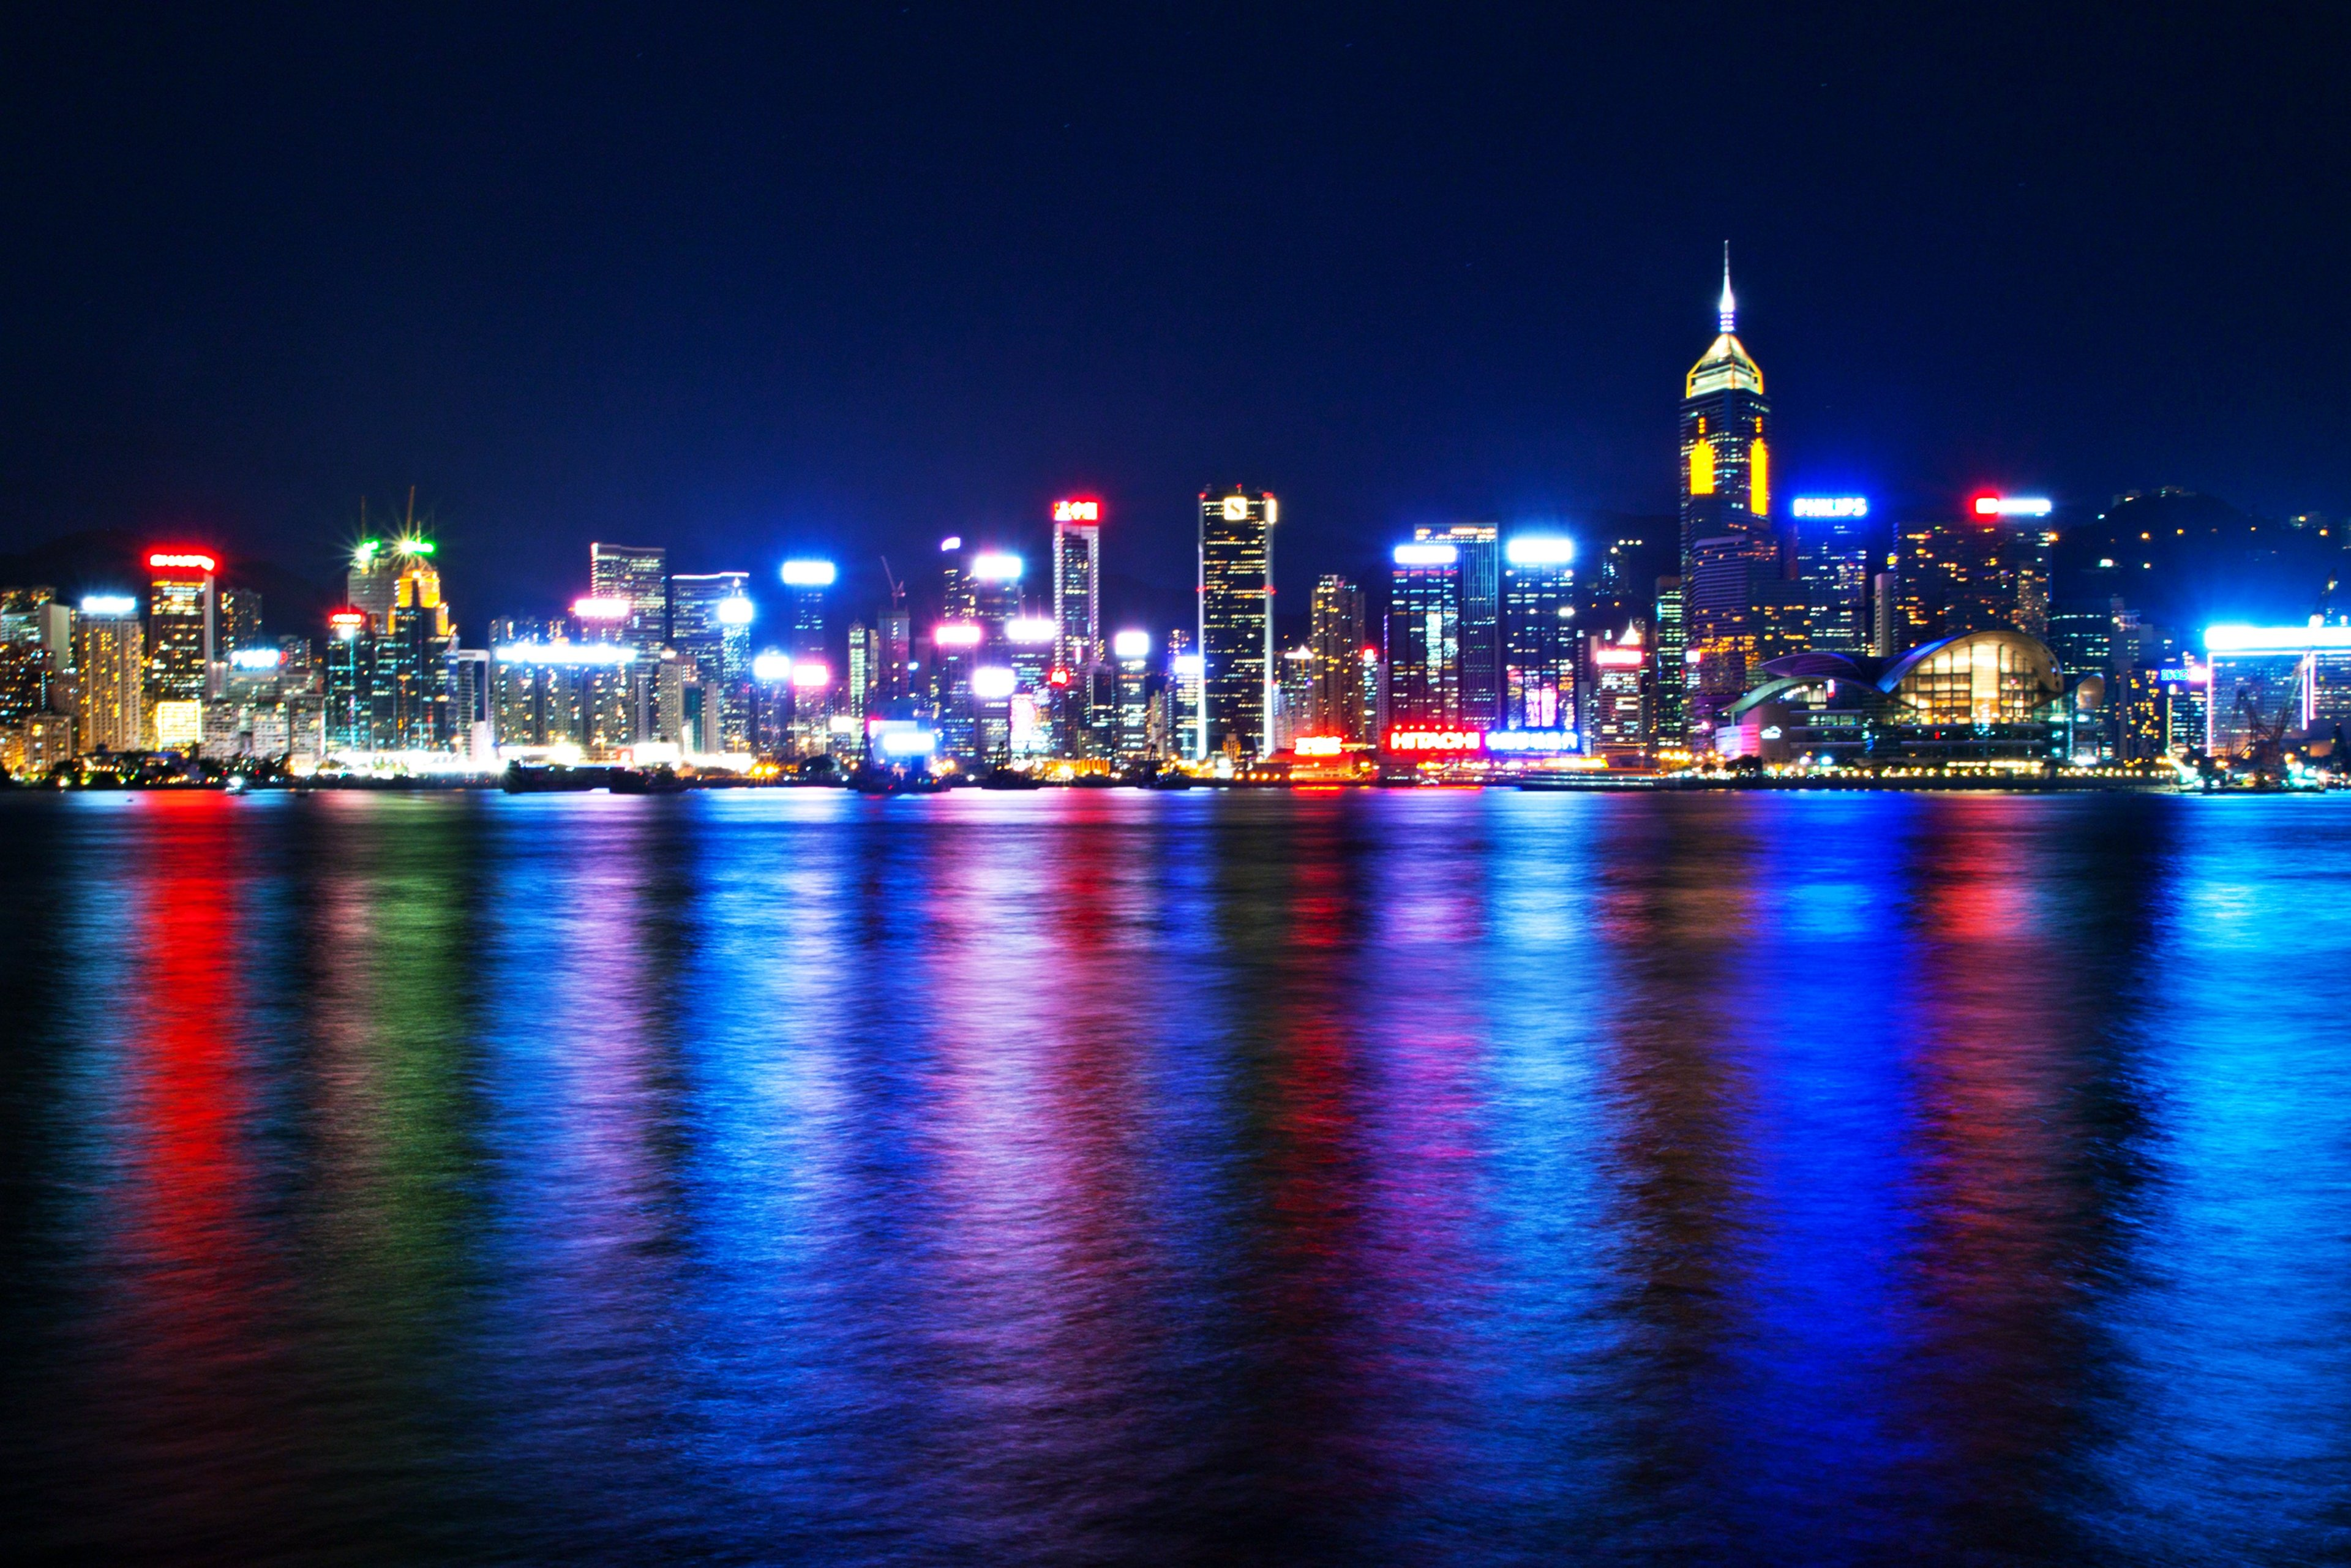 New york city colors colorful sea landscape Skyscrapers lights beauty luxury wallpaper ...